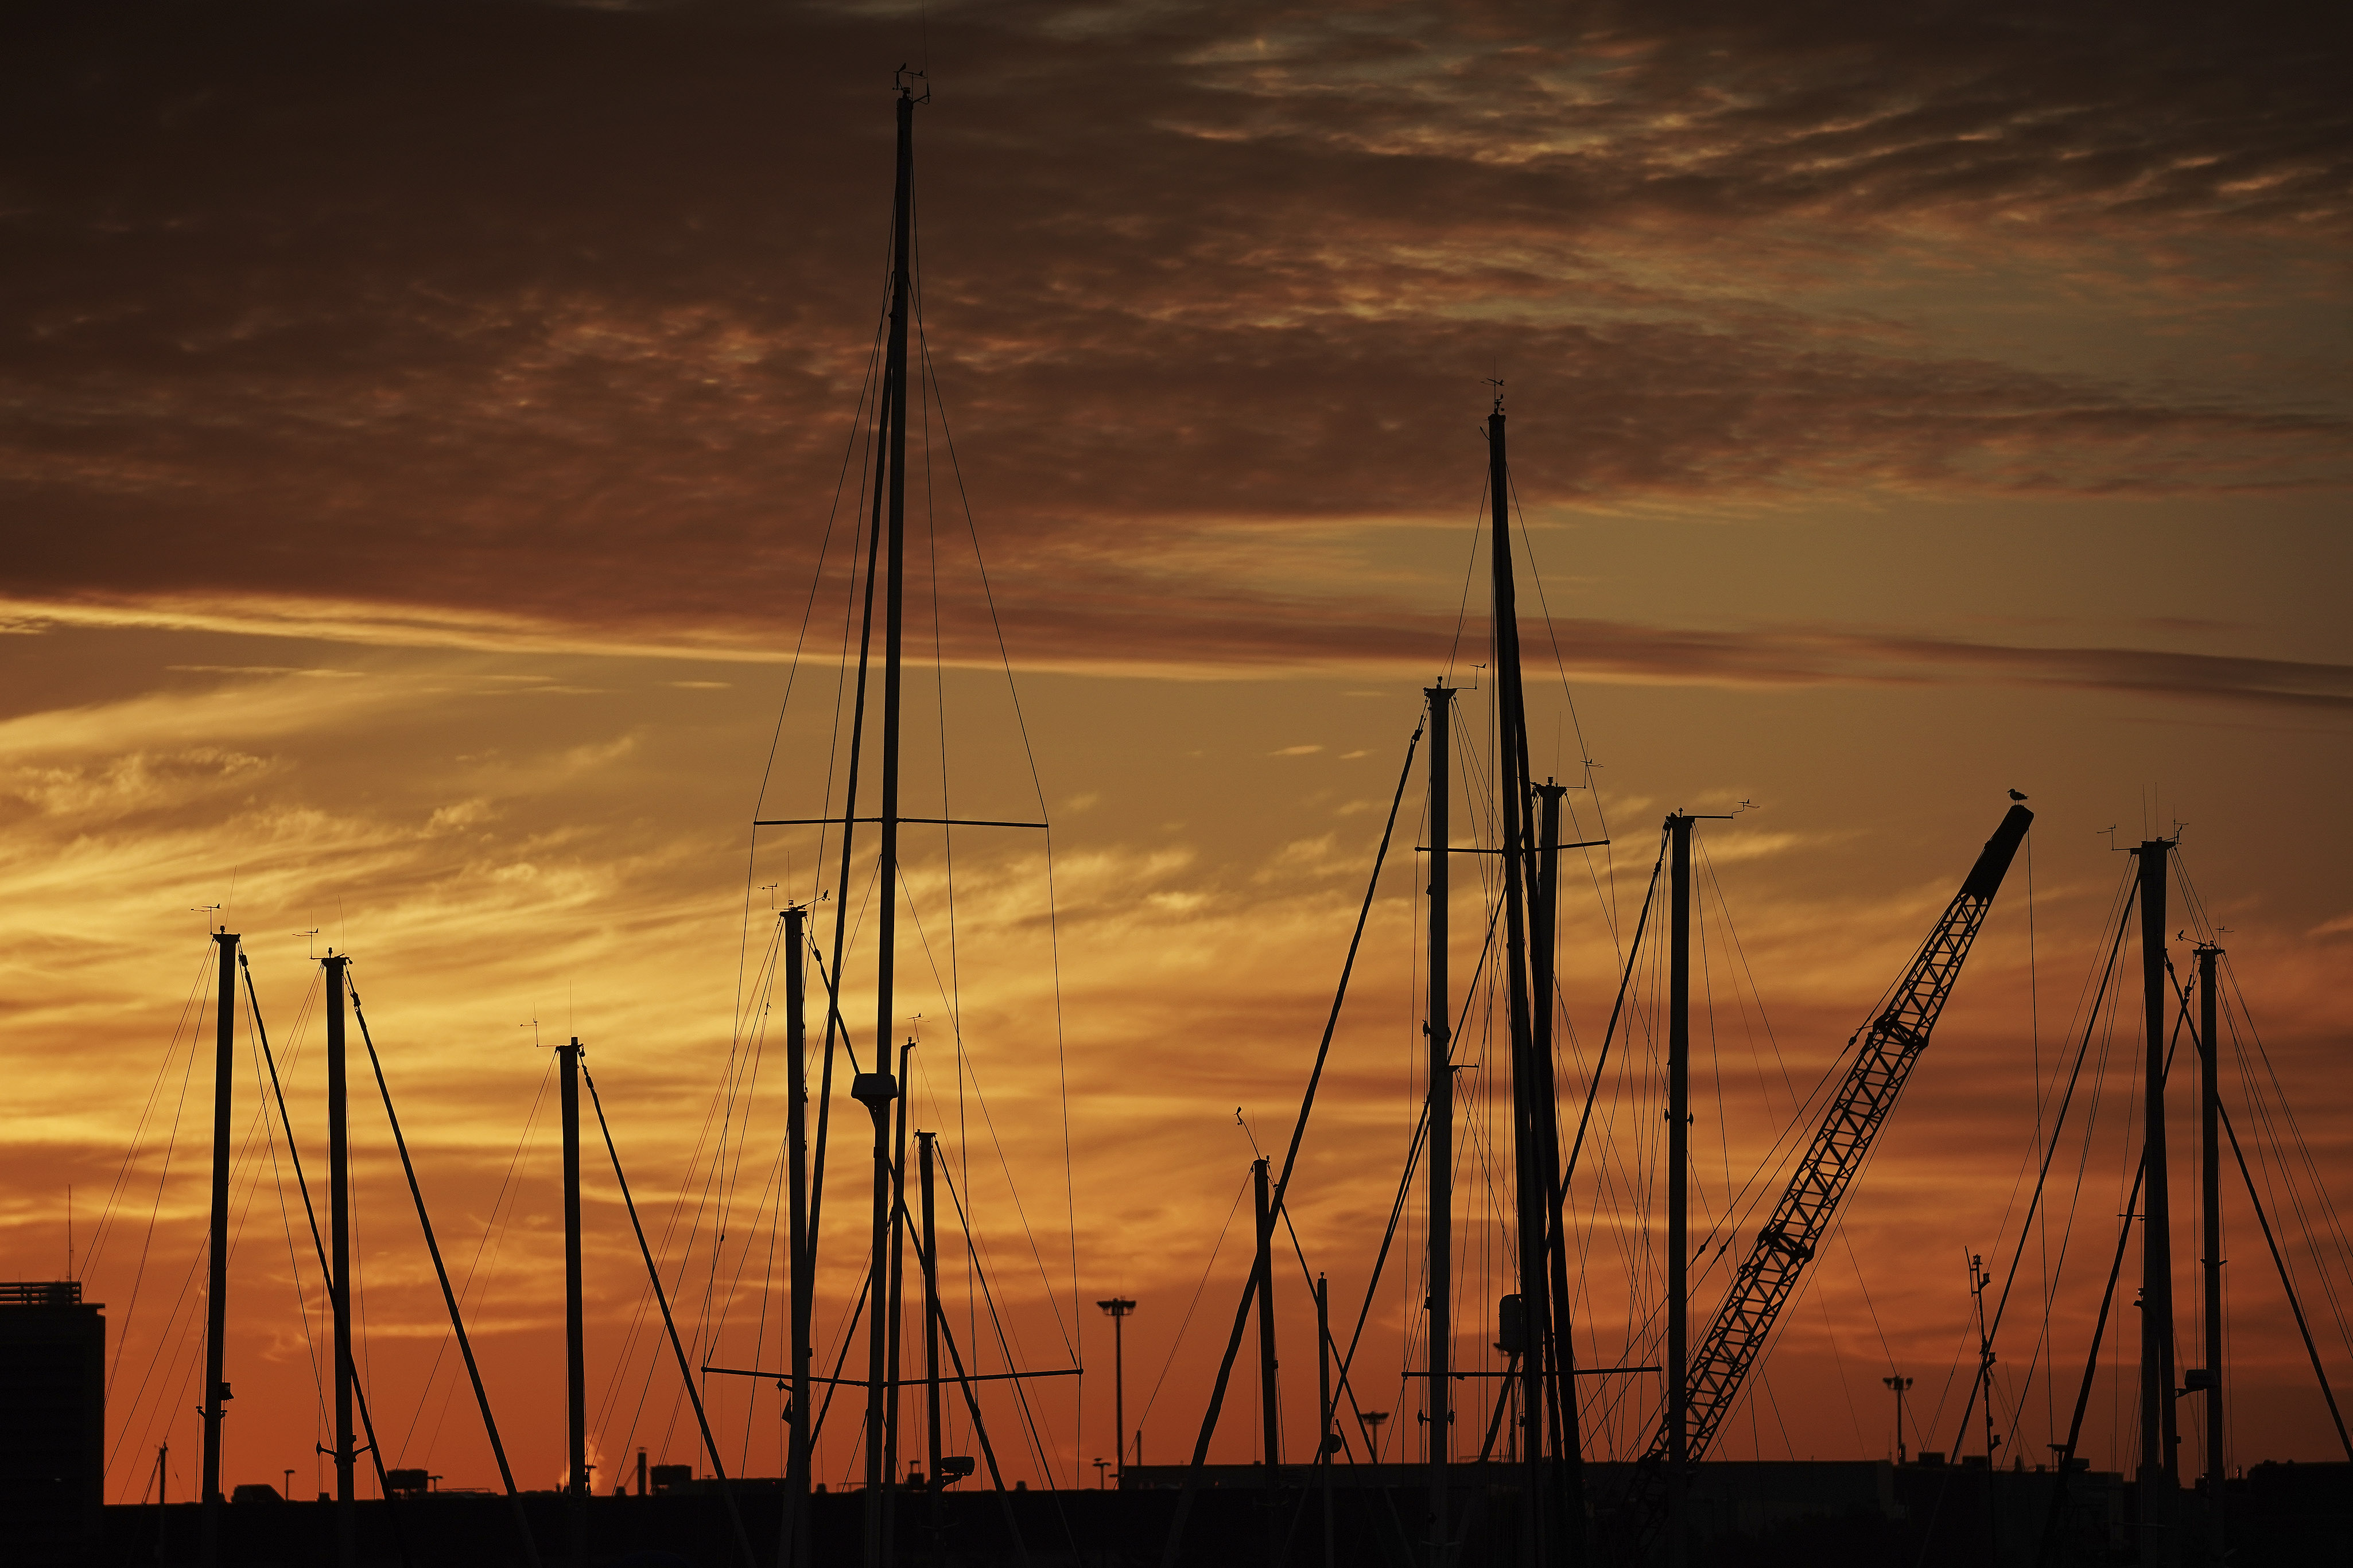 The sun rises on above the marina at Jeffries Point in Boston on Sunday, Oct. 20, 2019.